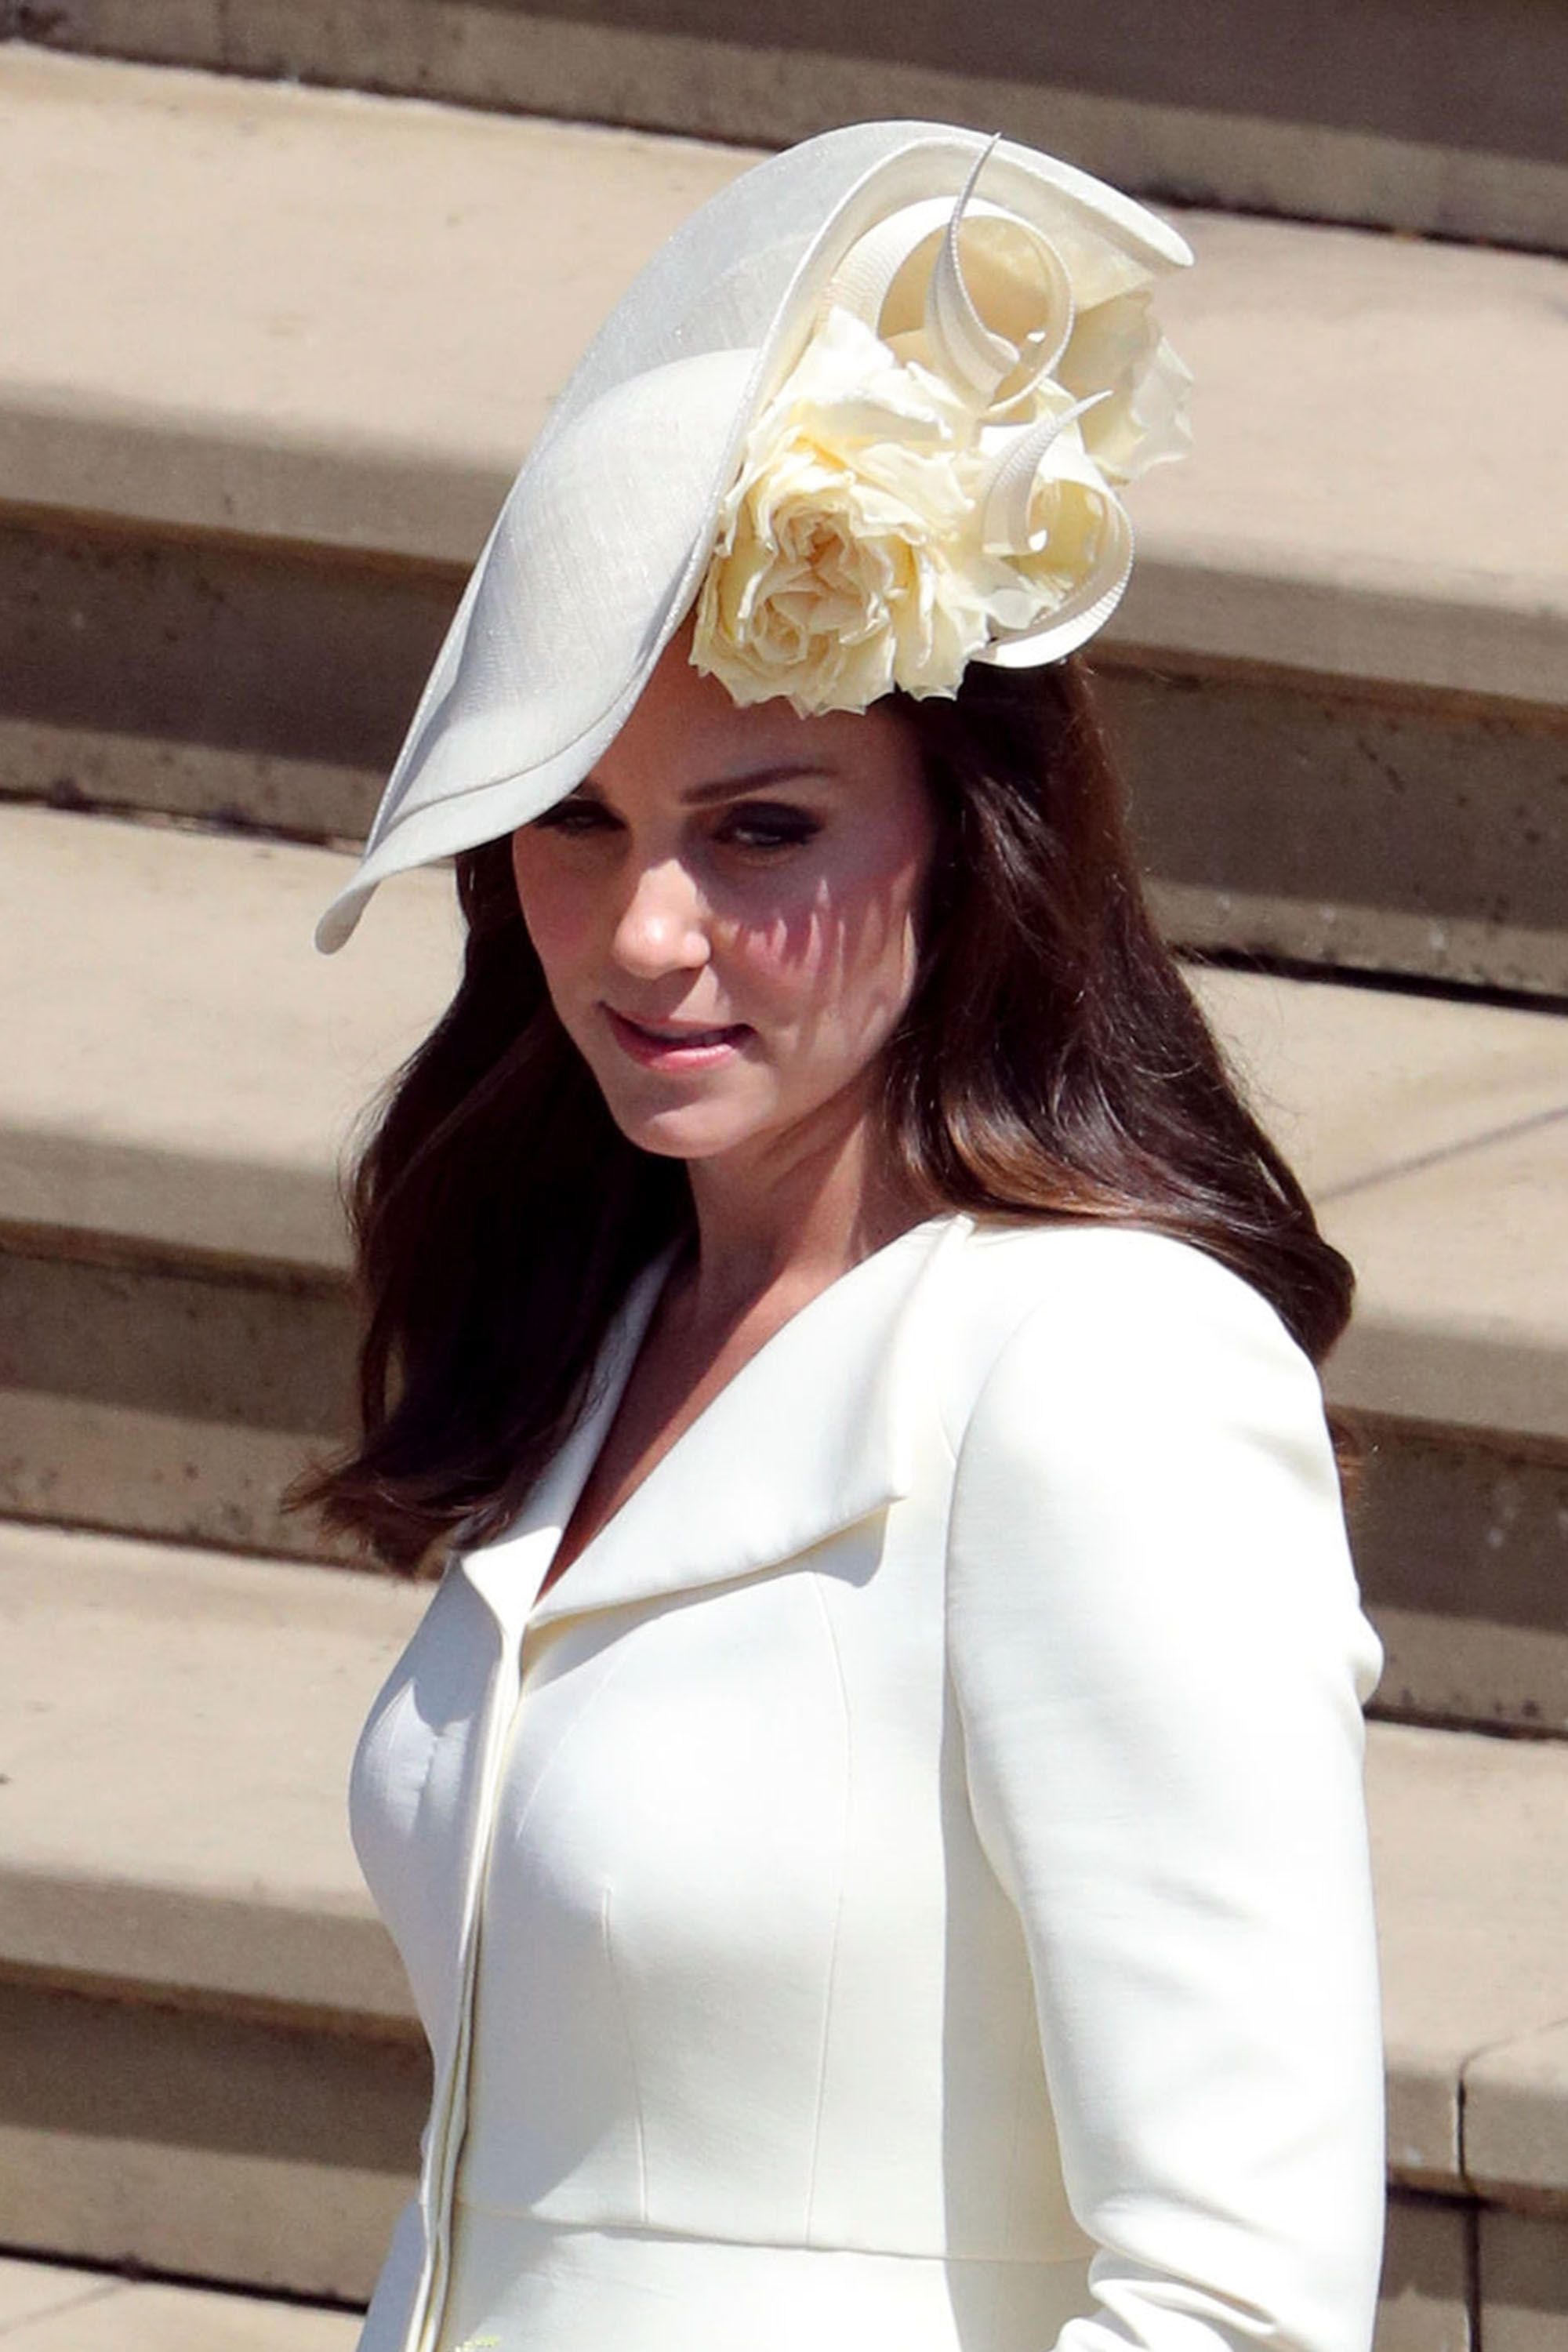 nudes Pippa Middleton (47 images) Leaked, Facebook, cleavage